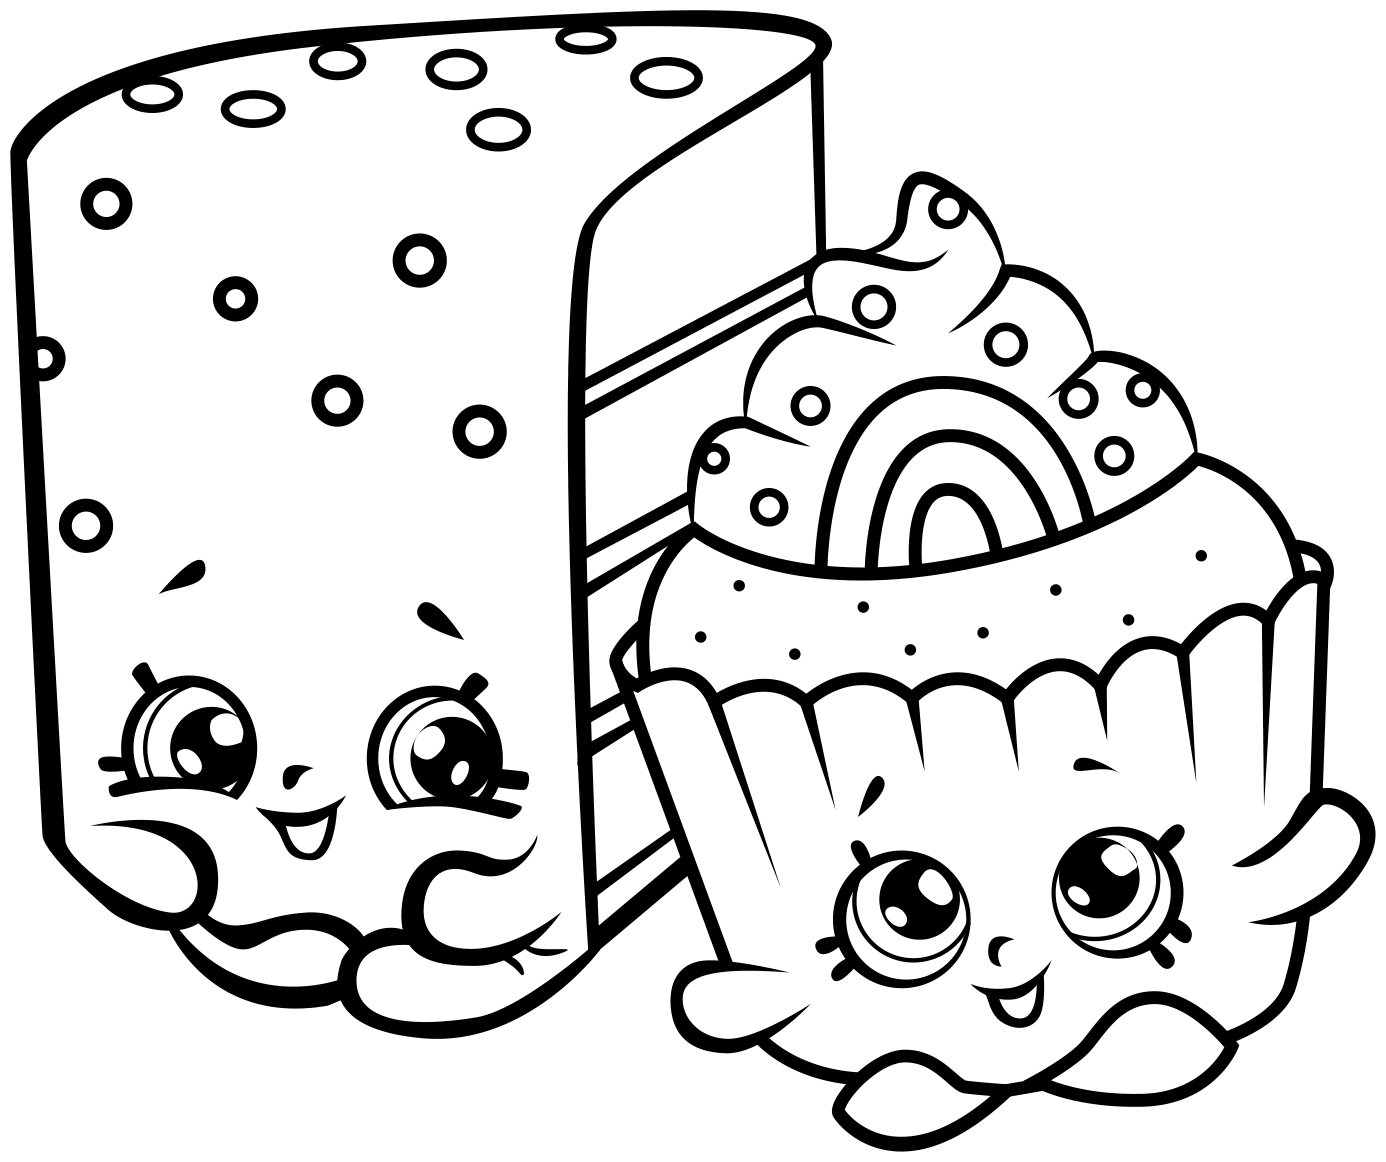 Shopkins Coloring Pages Printable Shopkins Pinterest